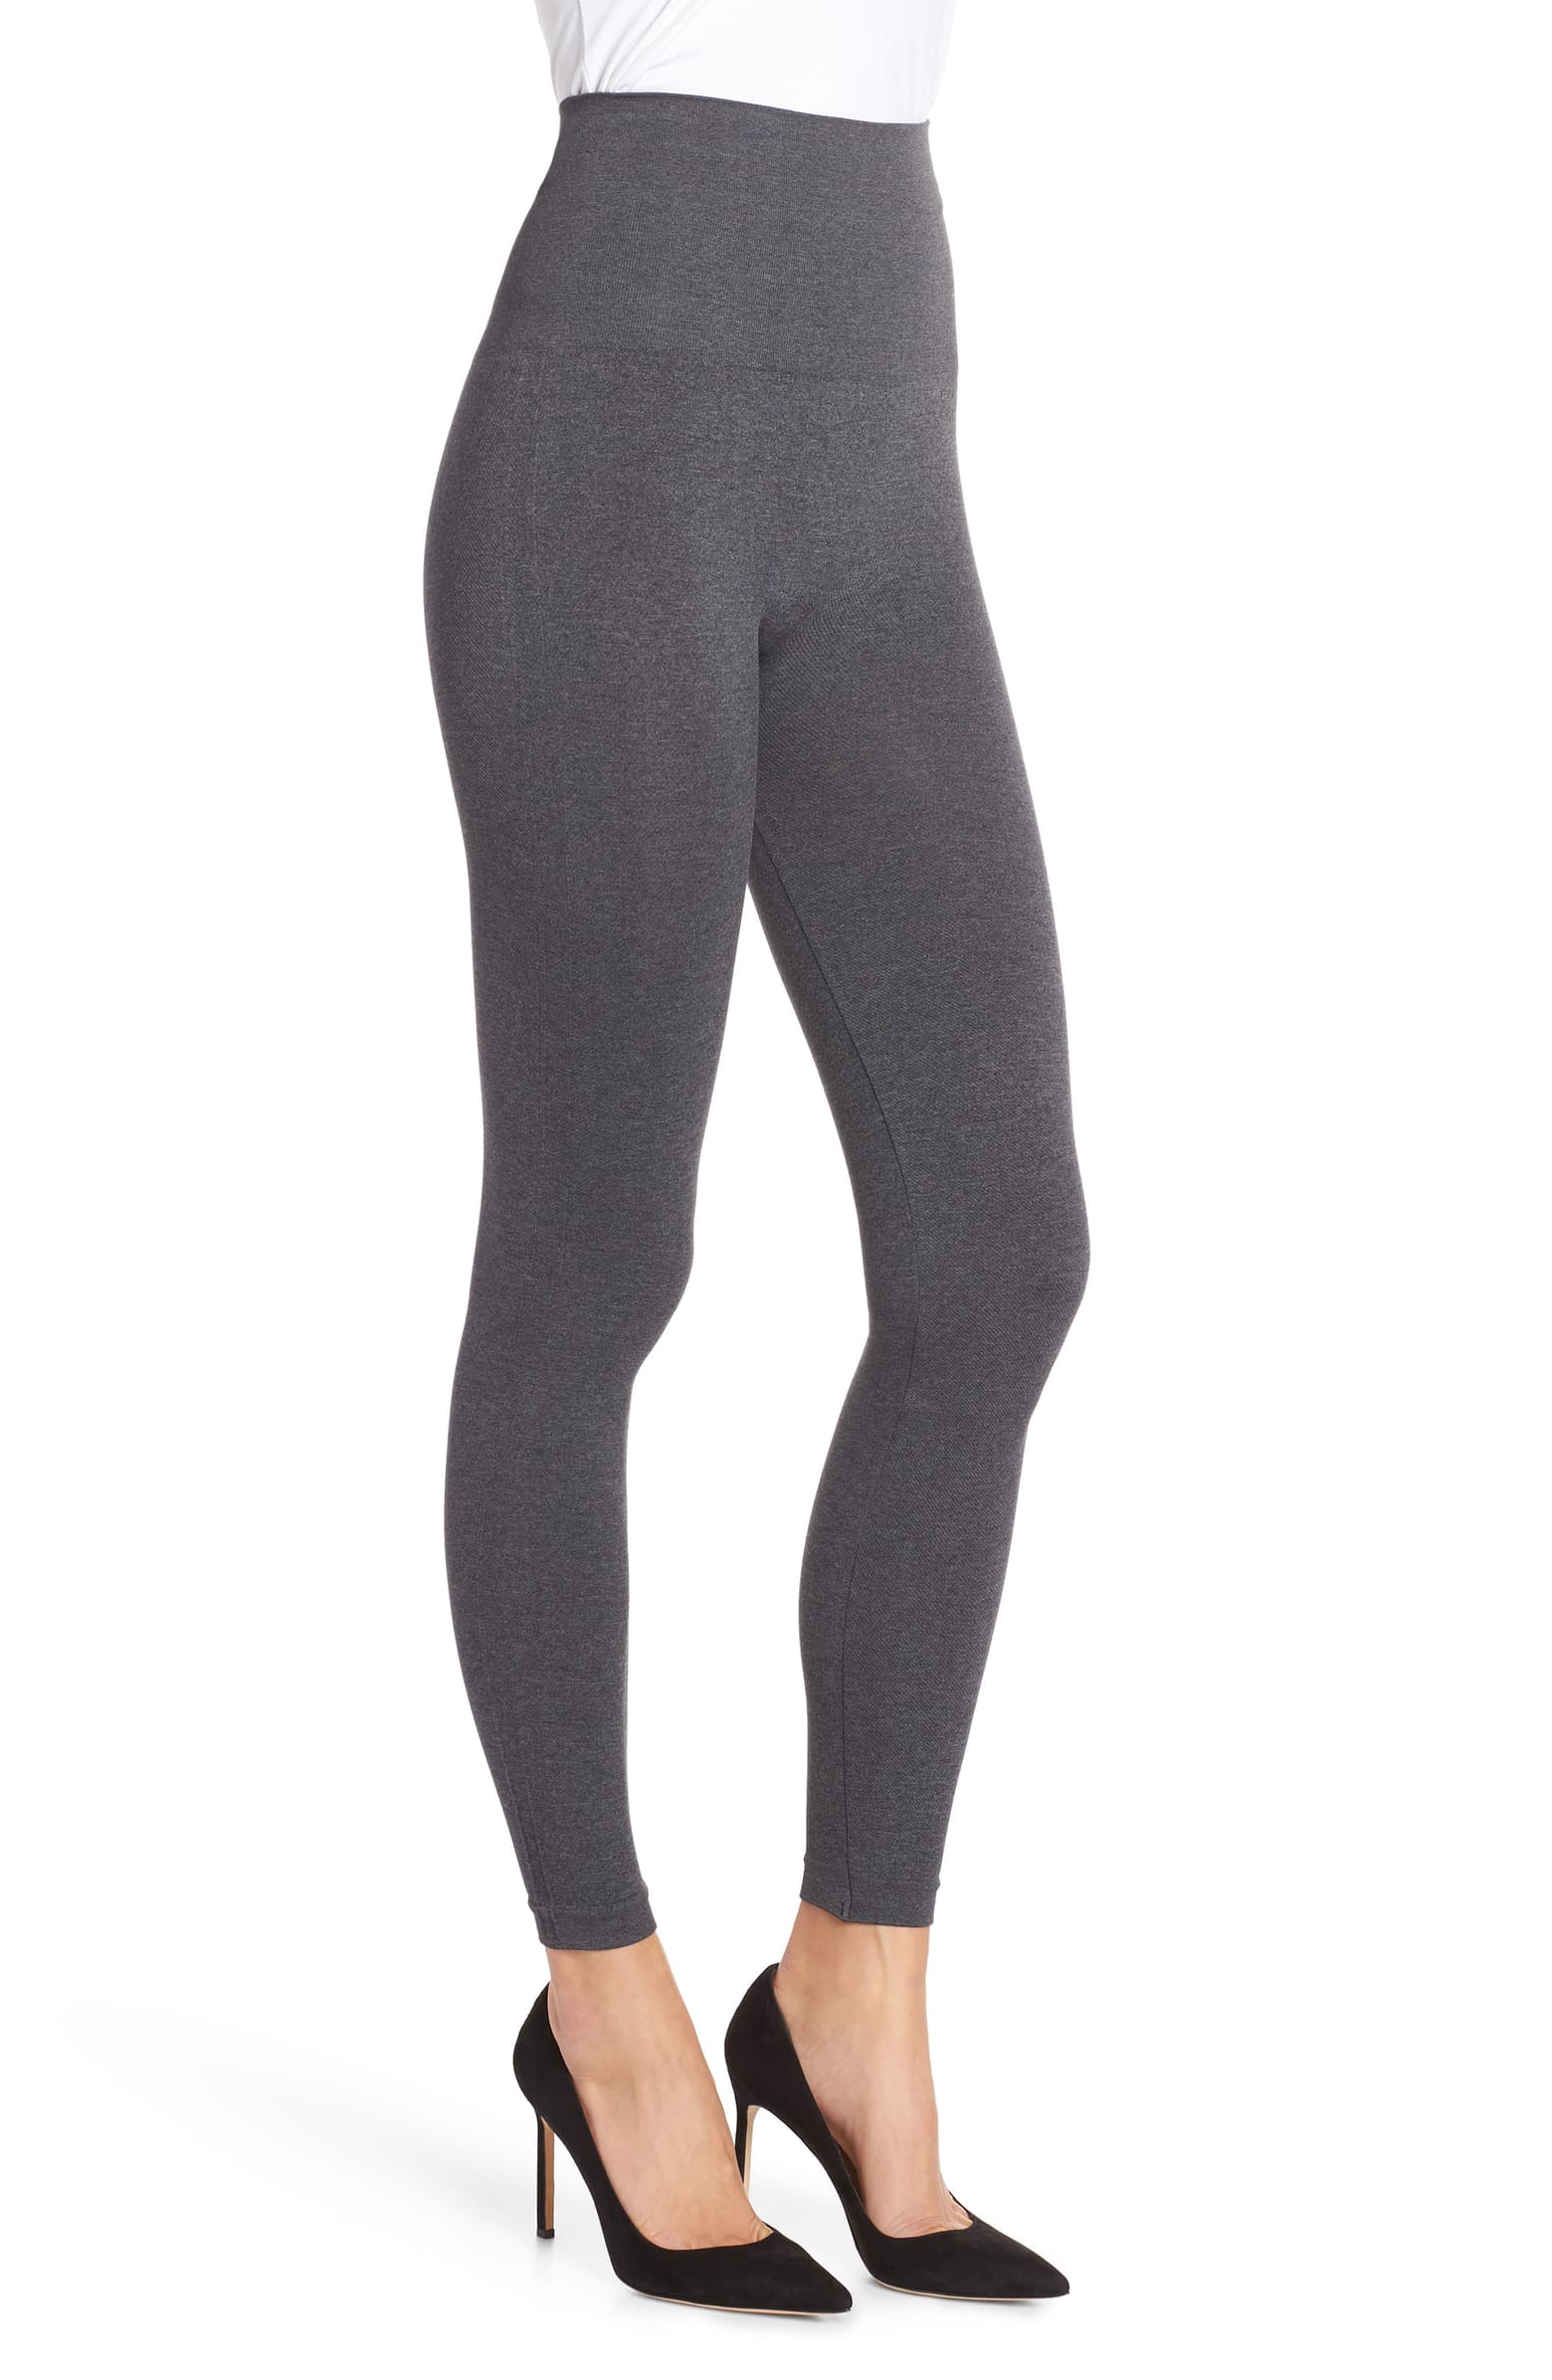 Look at Me Now Seamless Leggings from Spanx